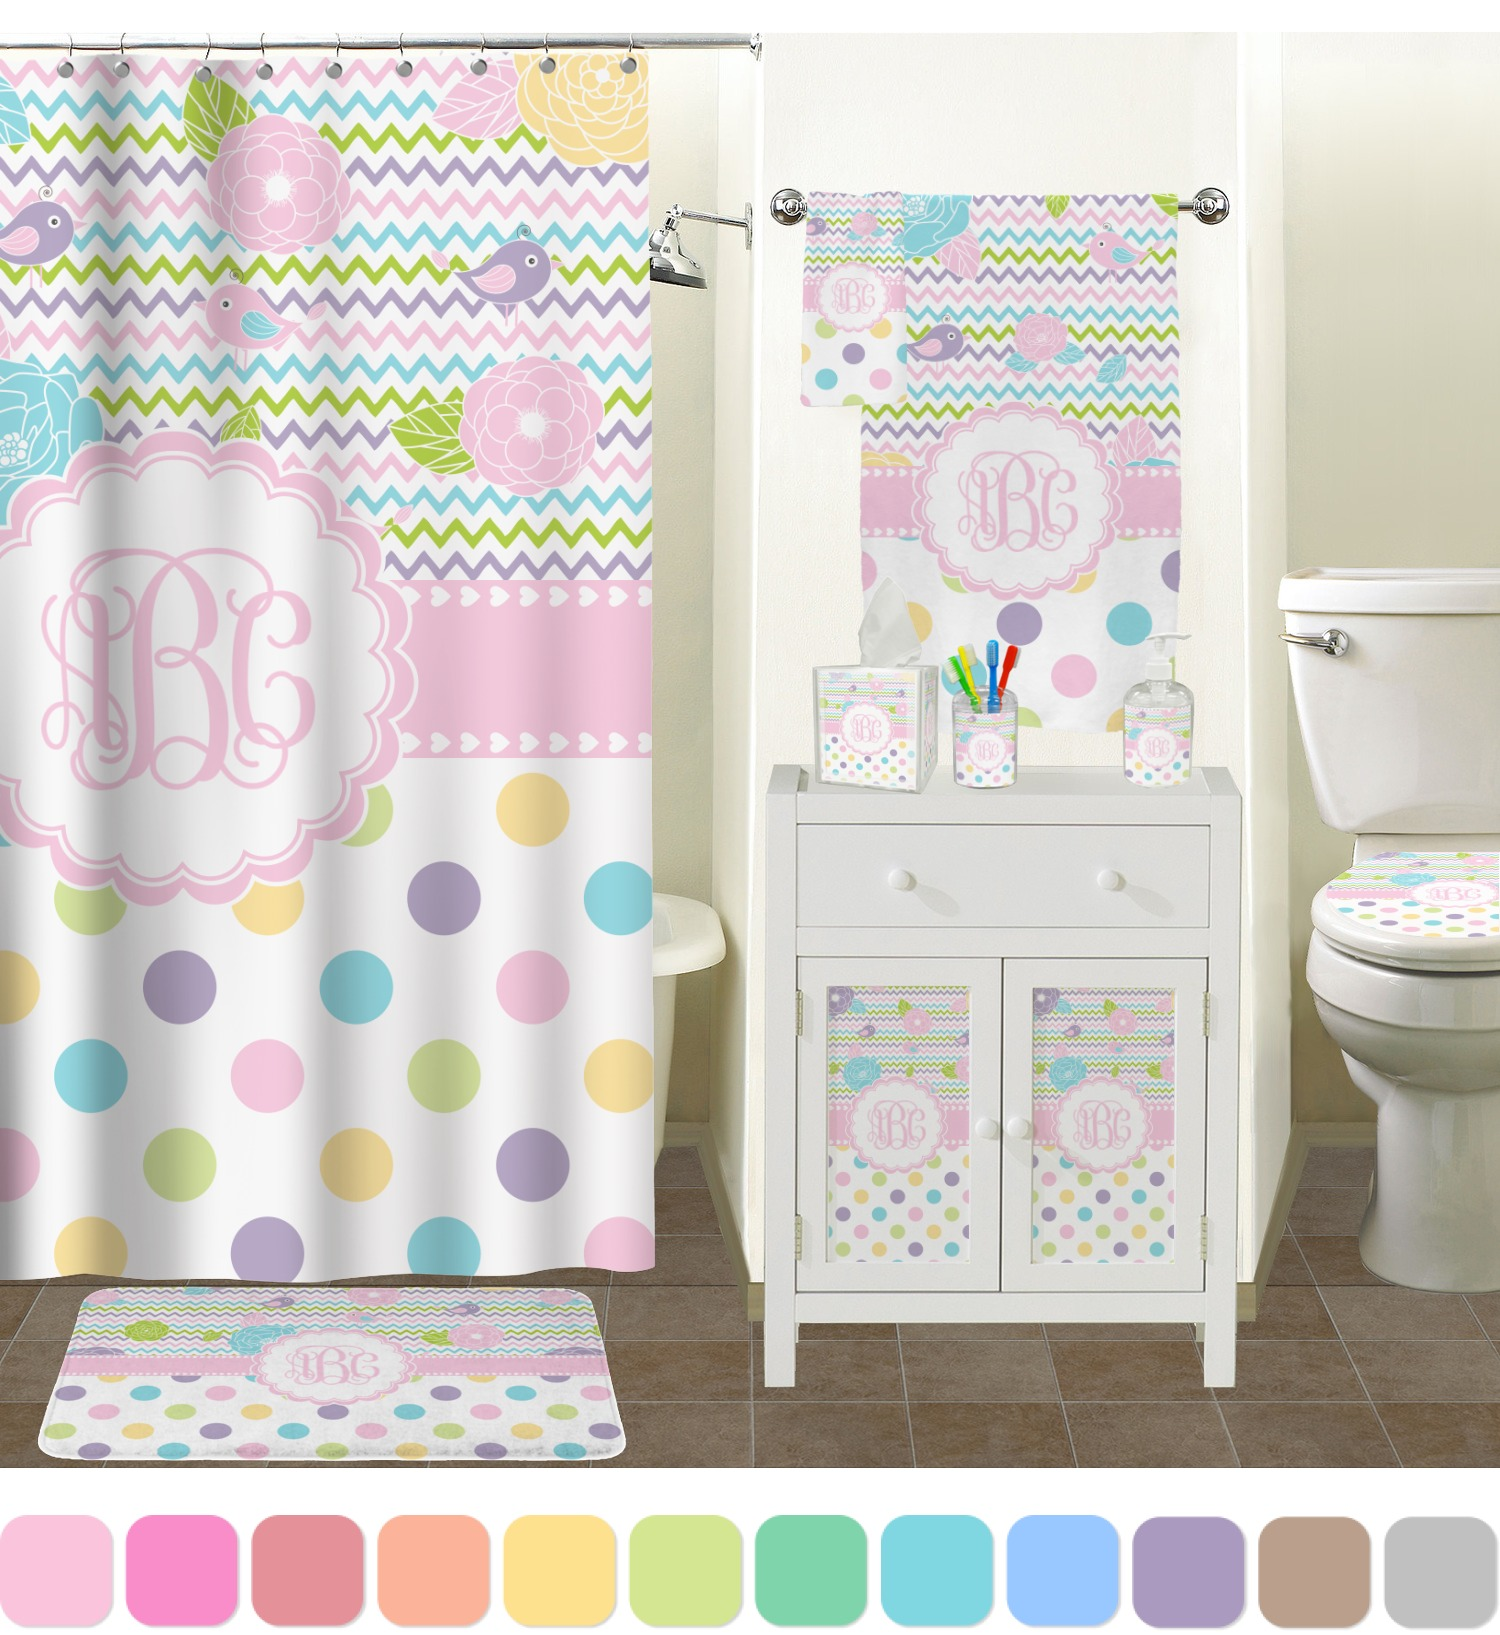 Girly Bathroom Decor: Girly Girl Shower Curtain (Personalized)